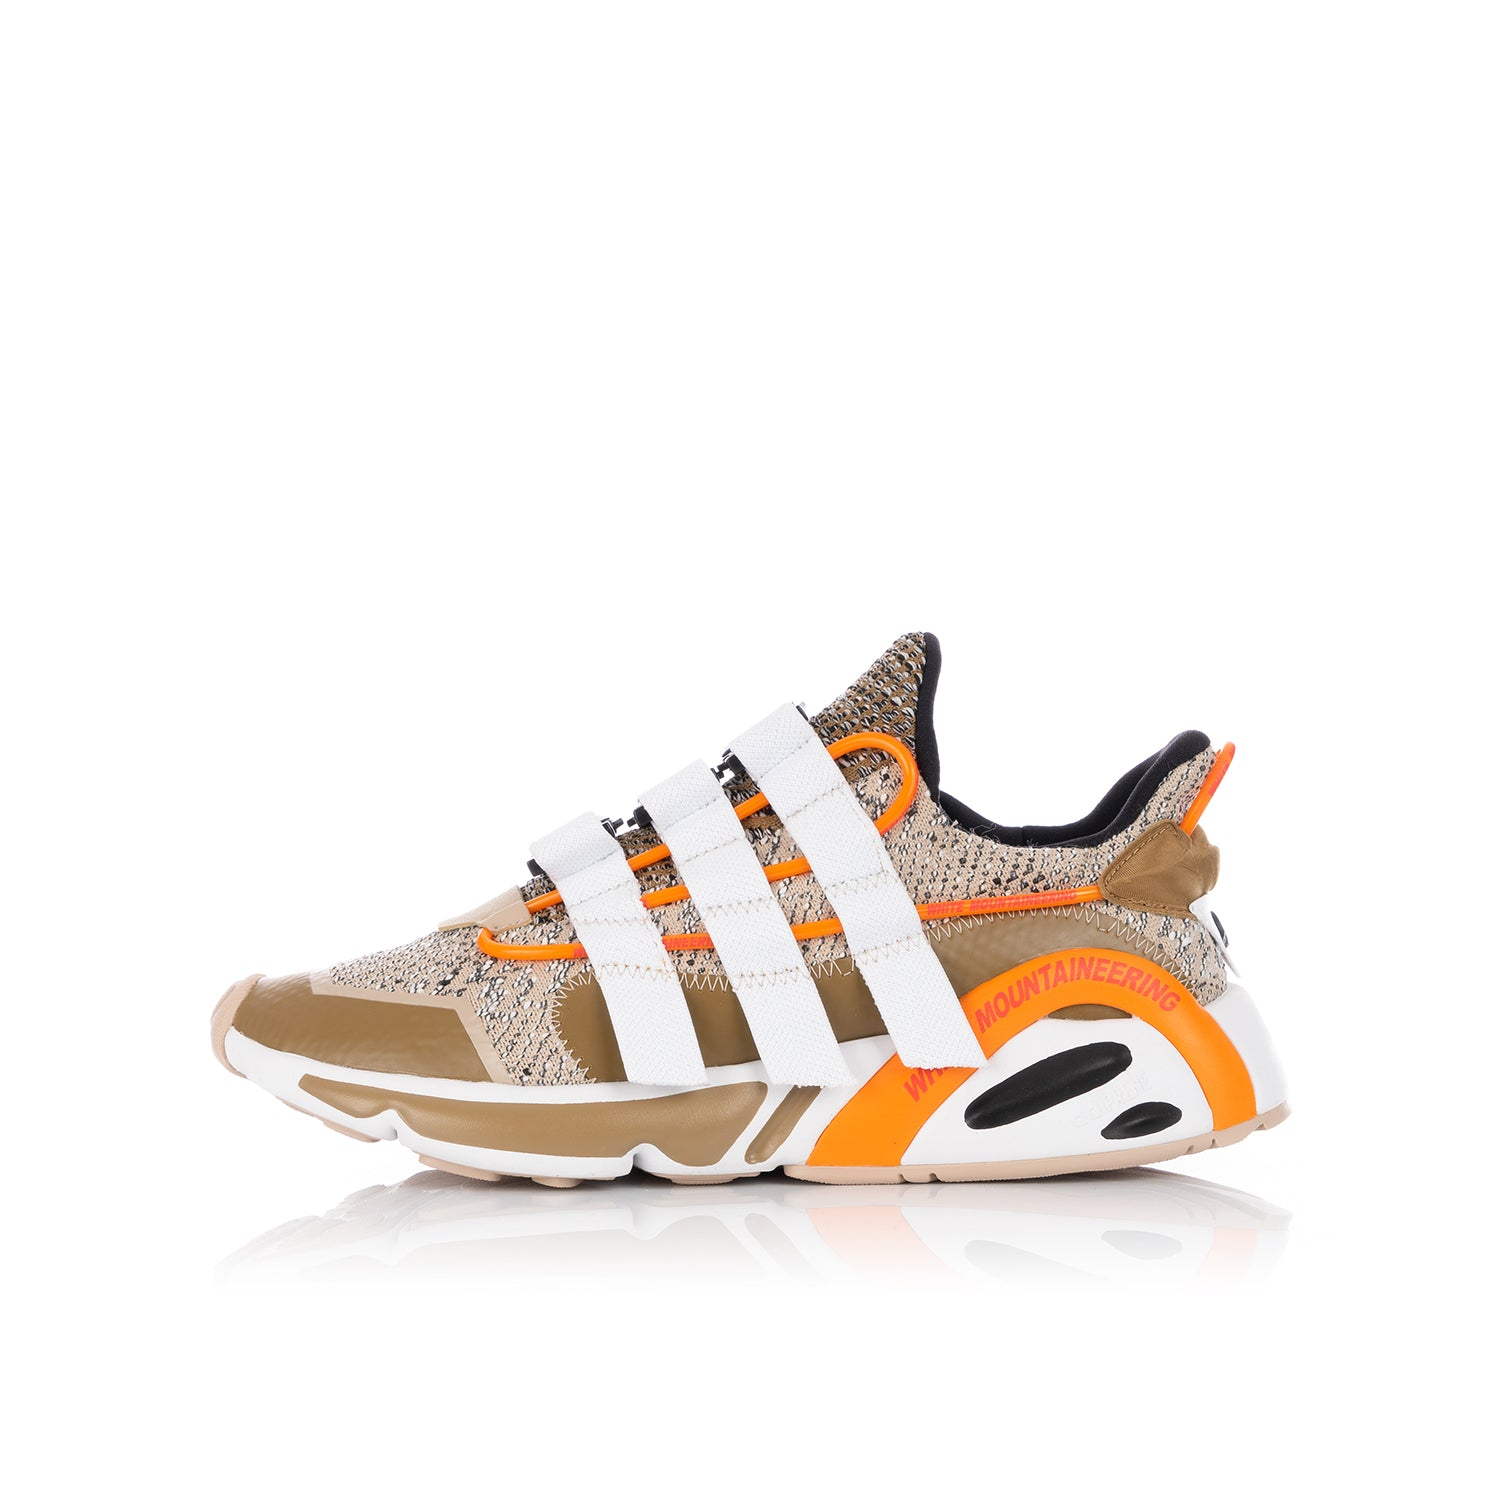 adidas Originals x White Mountaineering LXCON Light Brown Orange